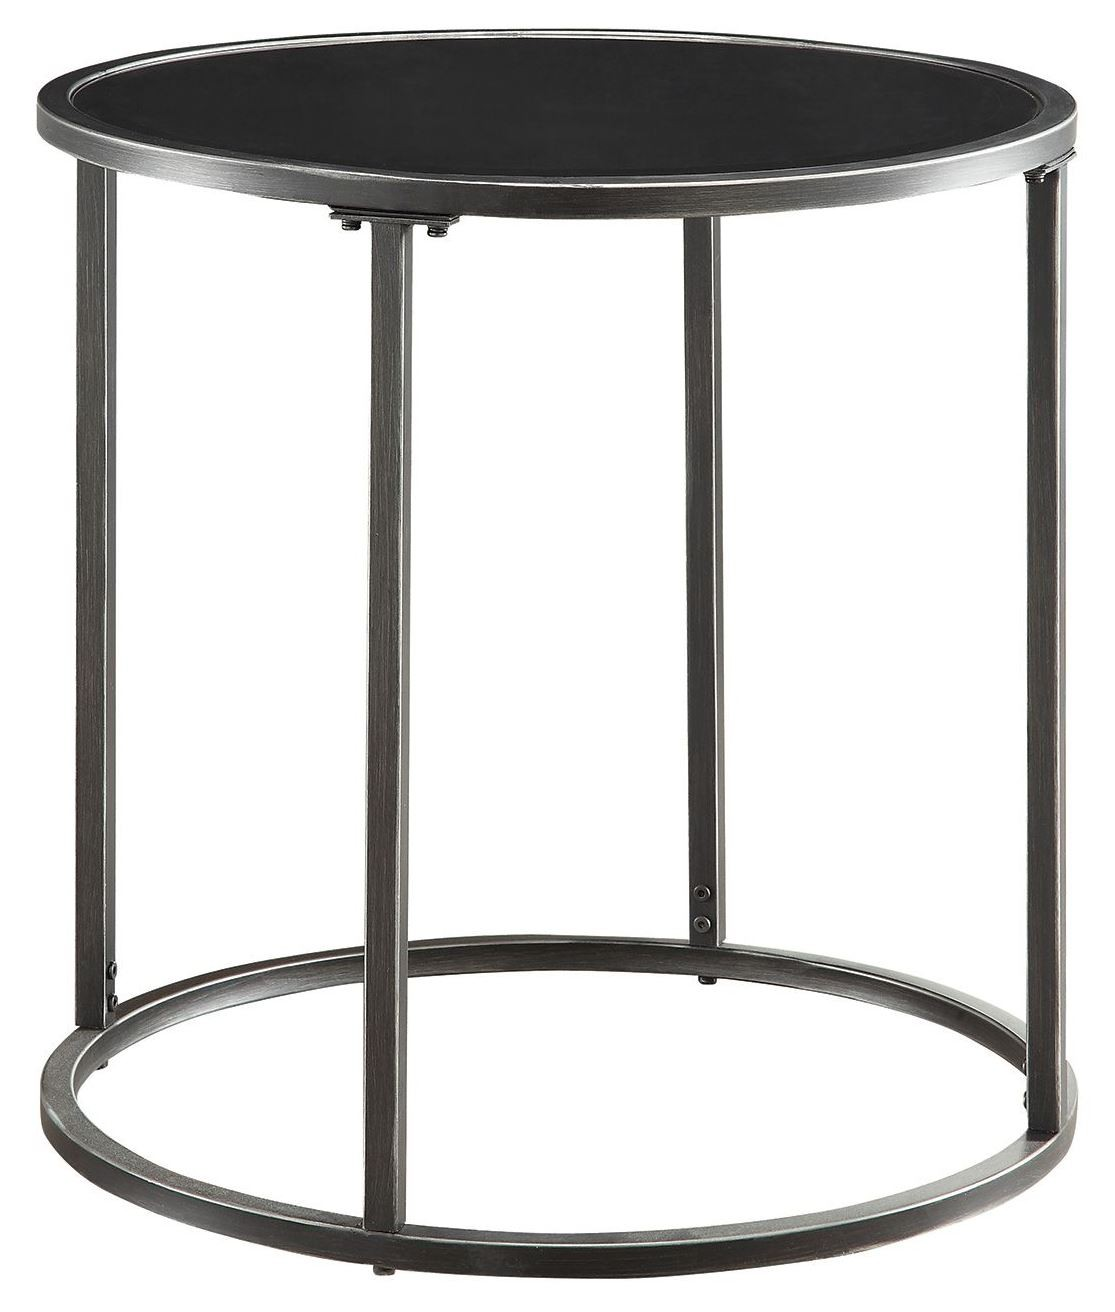 Black Glass Top End Table From Coaster 704397 Coleman Furniture